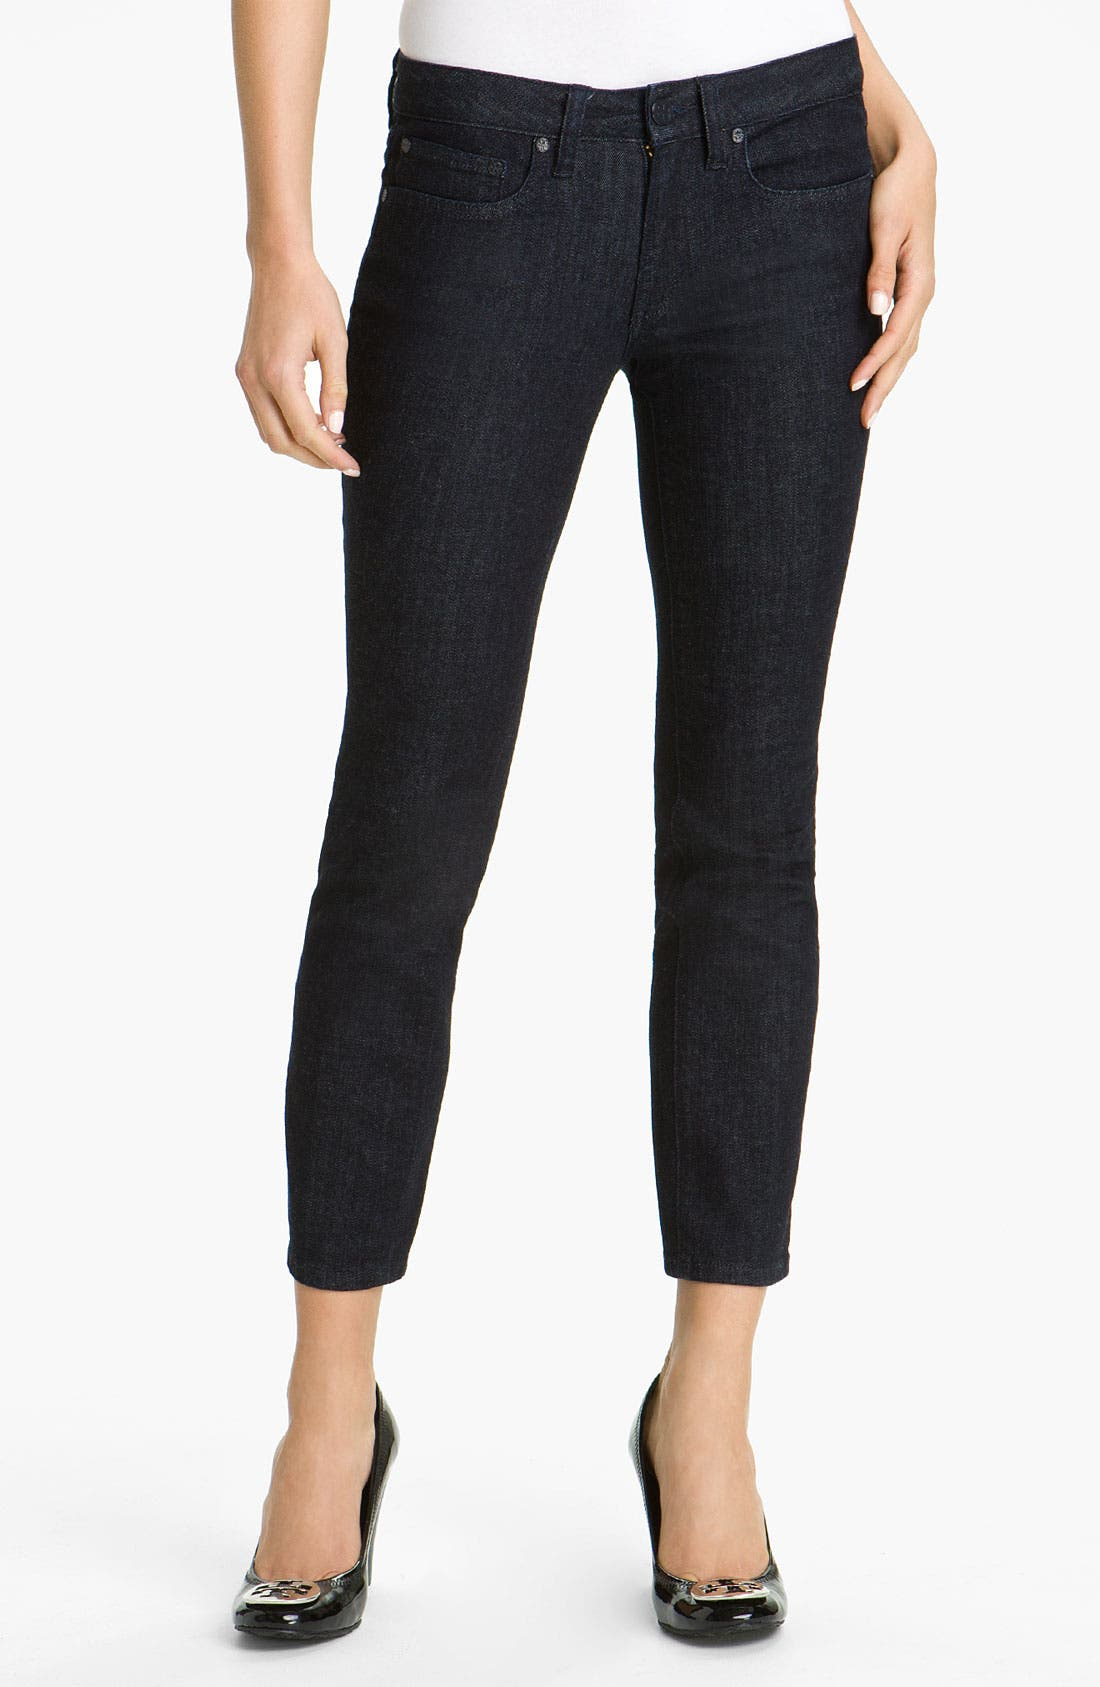 Alternate Image 1 Selected - Tory Burch Crop Skinny Jeans (Online Exclusive)